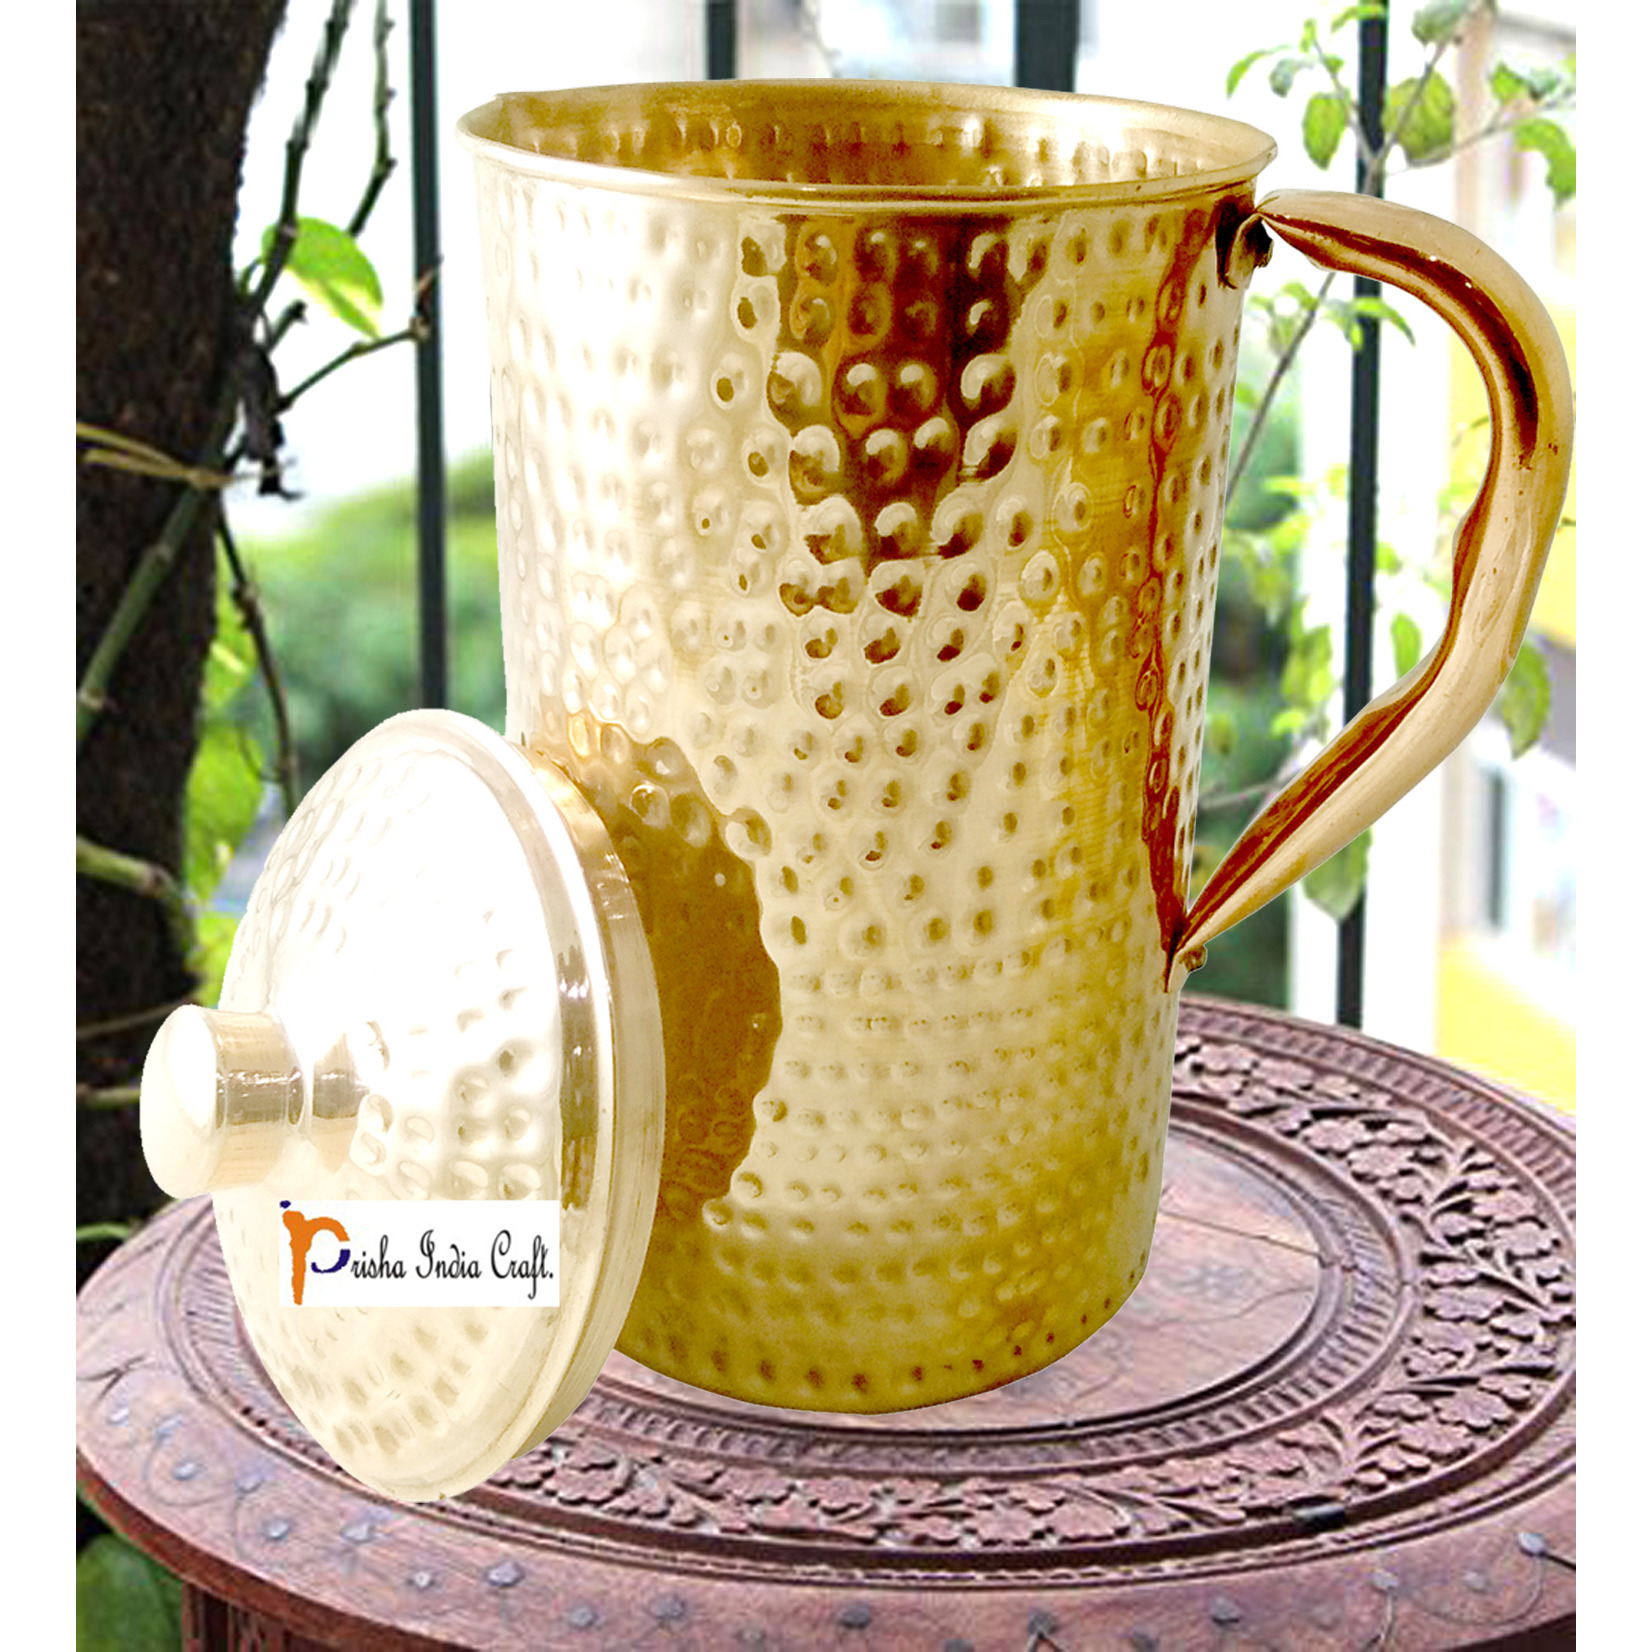 Prisha India Craft New Improved Hammered Copper Jug Pitcher, Drinkware & Serveware, Yoga, 1450 ML | 49 Ounce